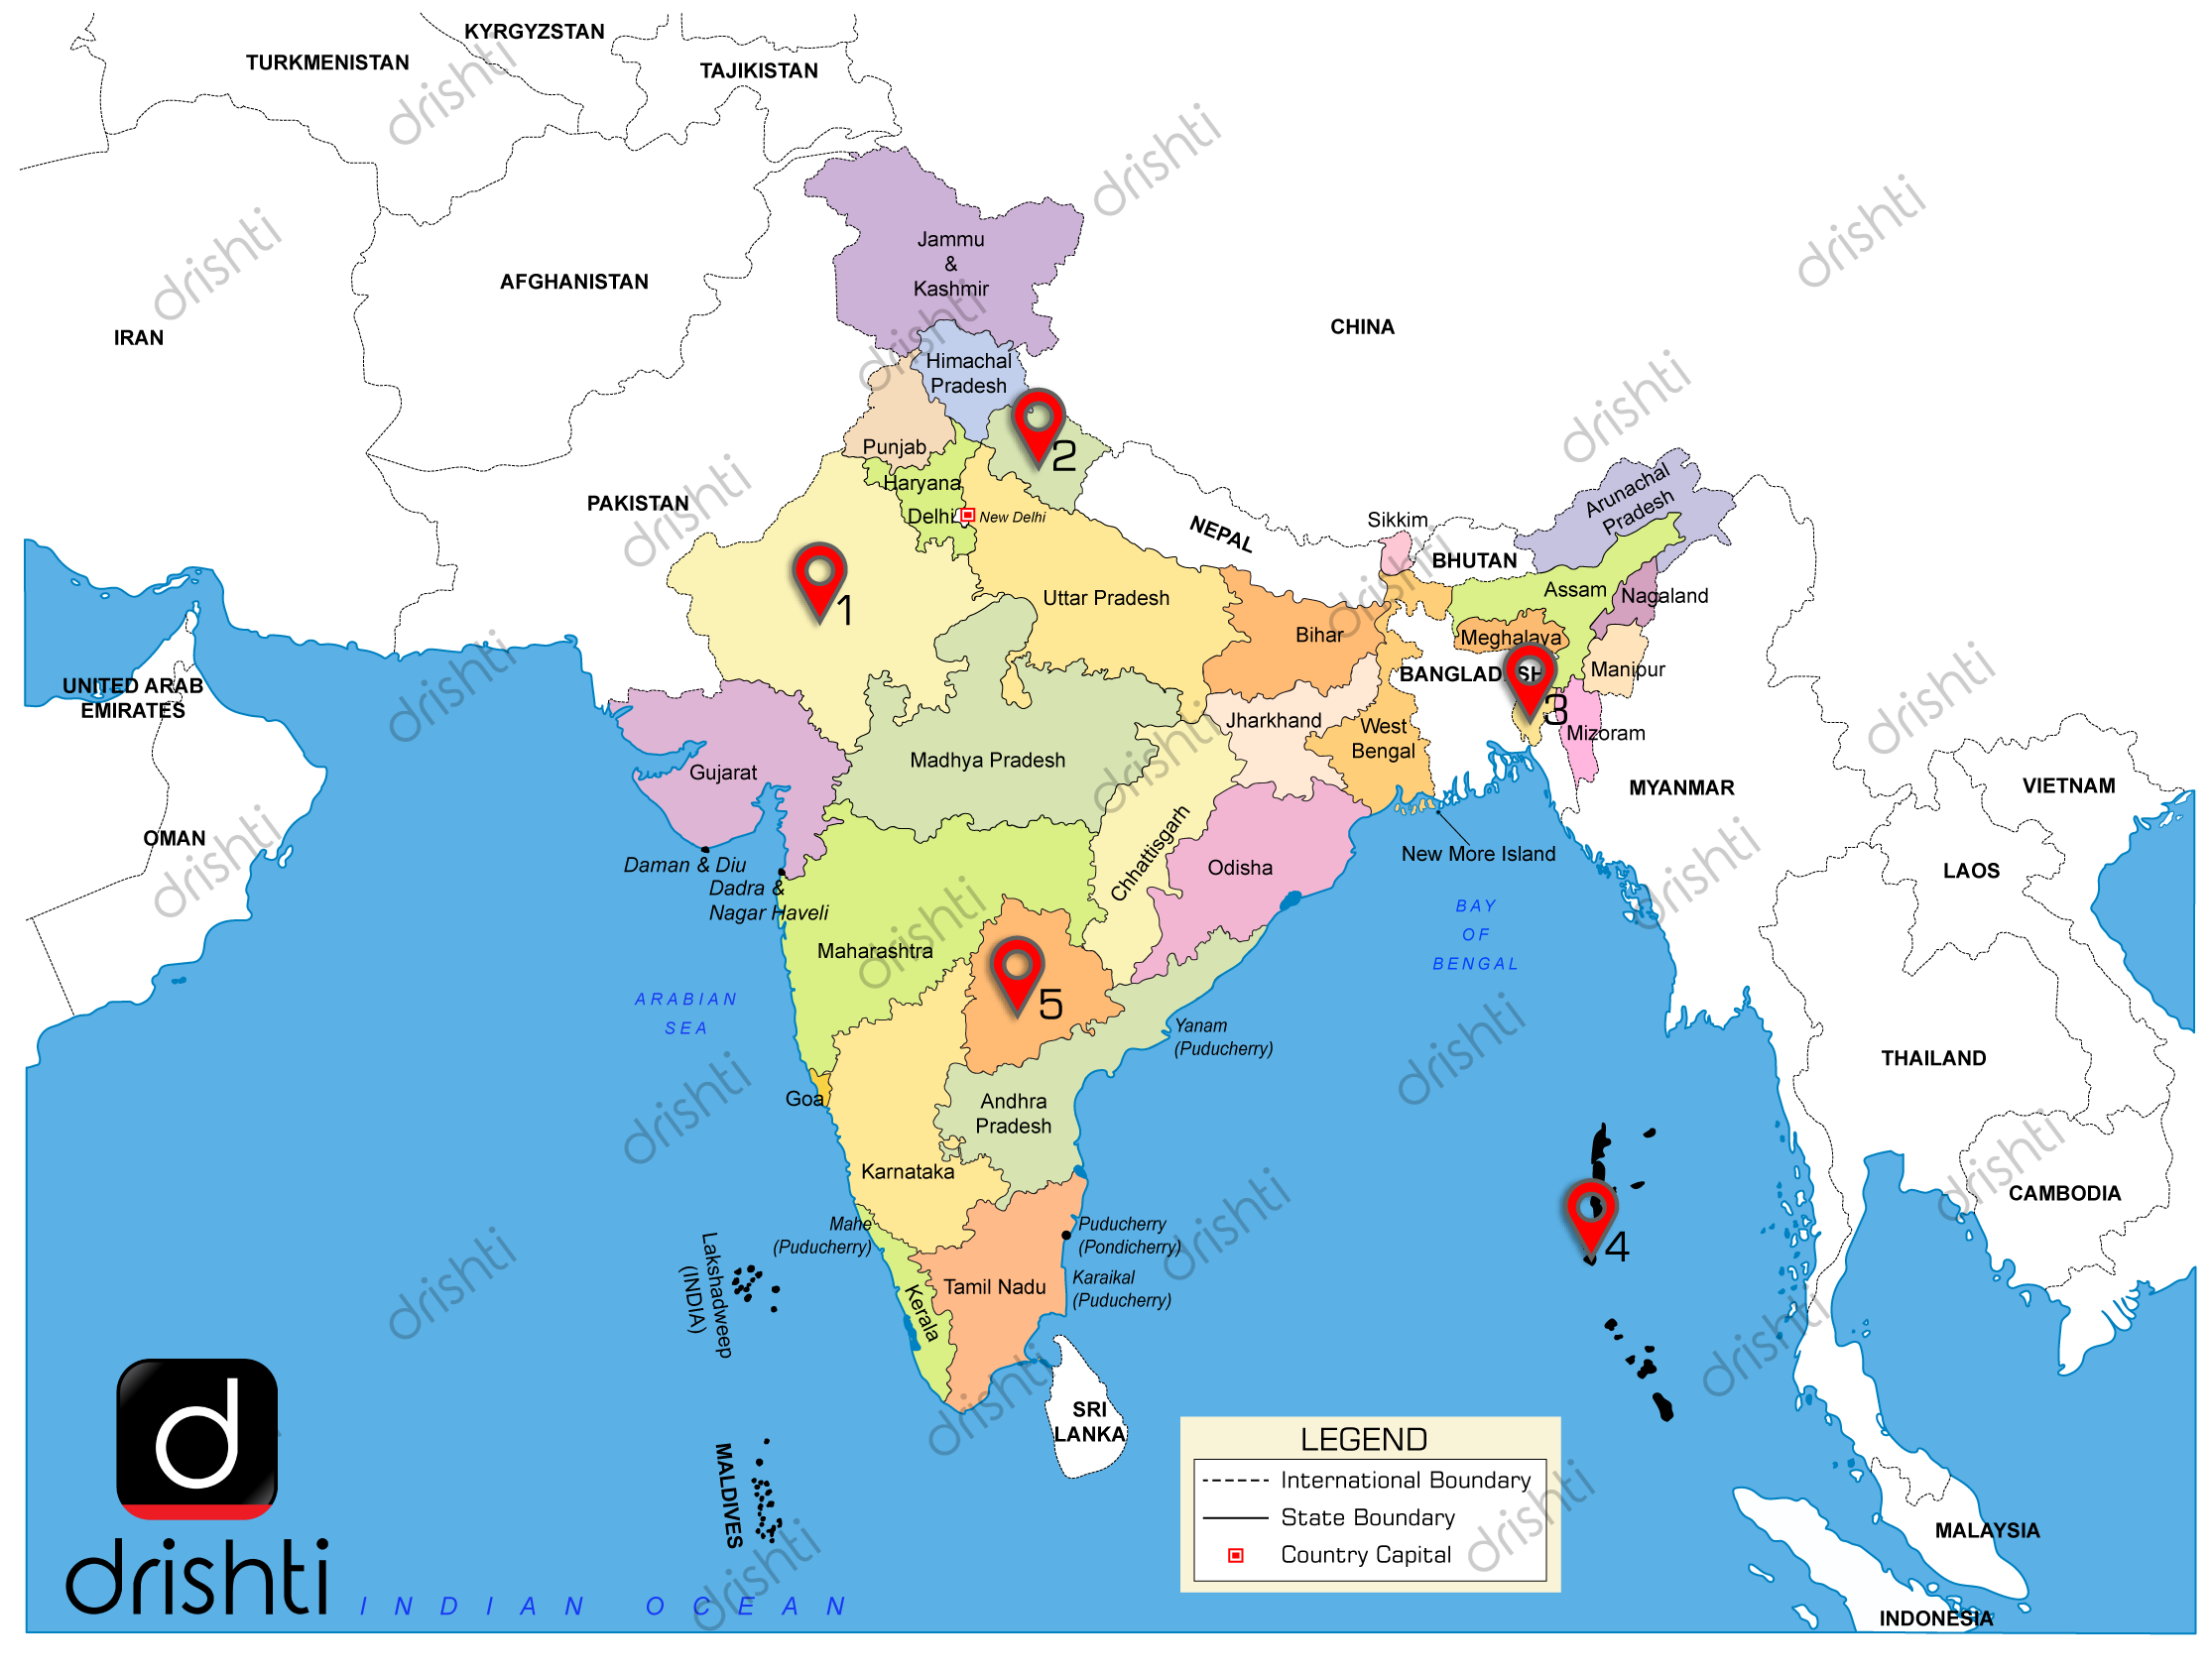 India Map : April (V) 2019 : Learning Through Maps